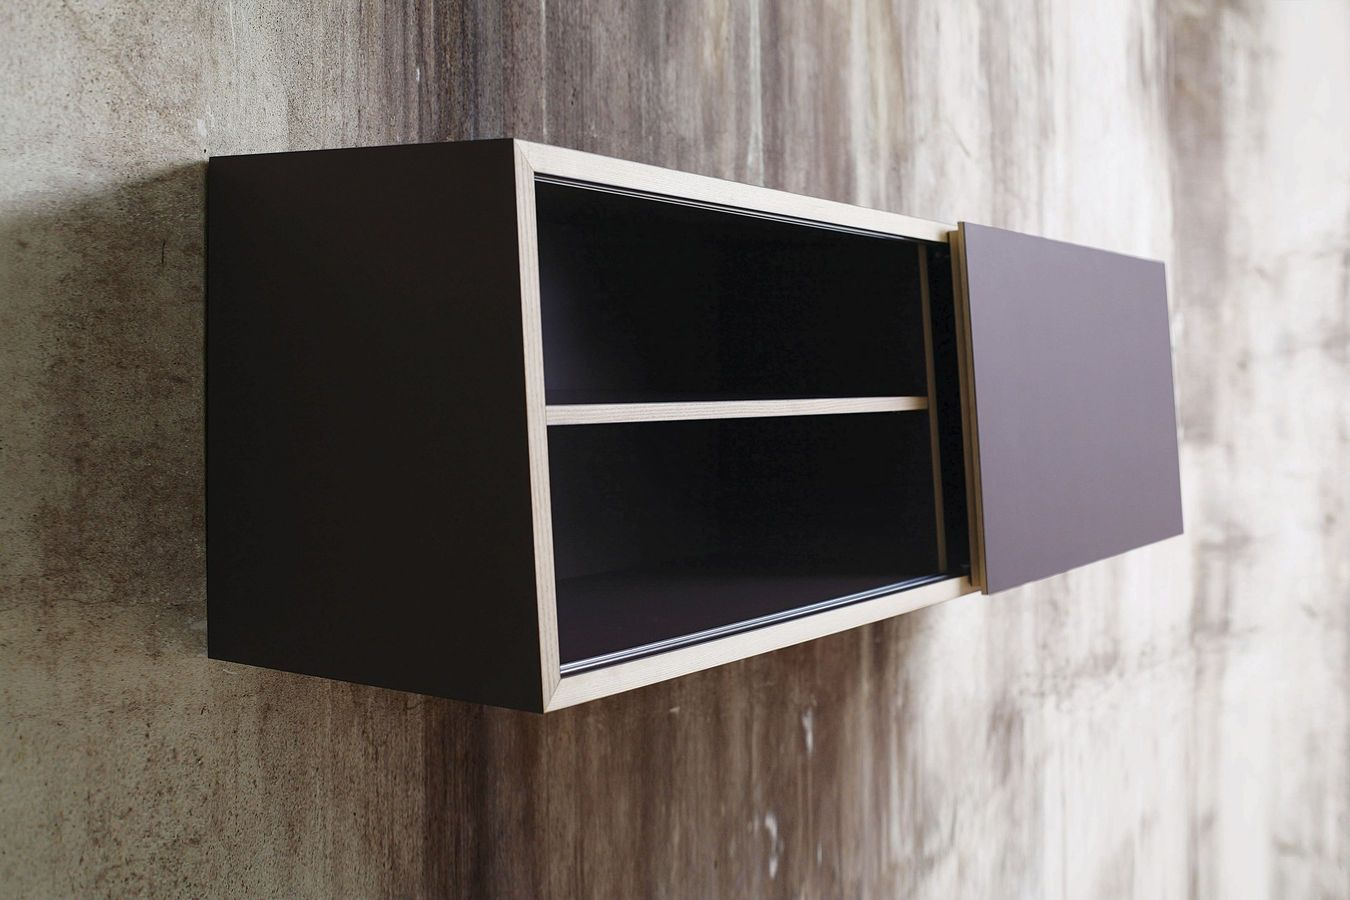 Black Bathroom Wall Cabinet 4 With Images Bathroom Wall Cabinets Wall Storage Cabinets Glass Bathroom